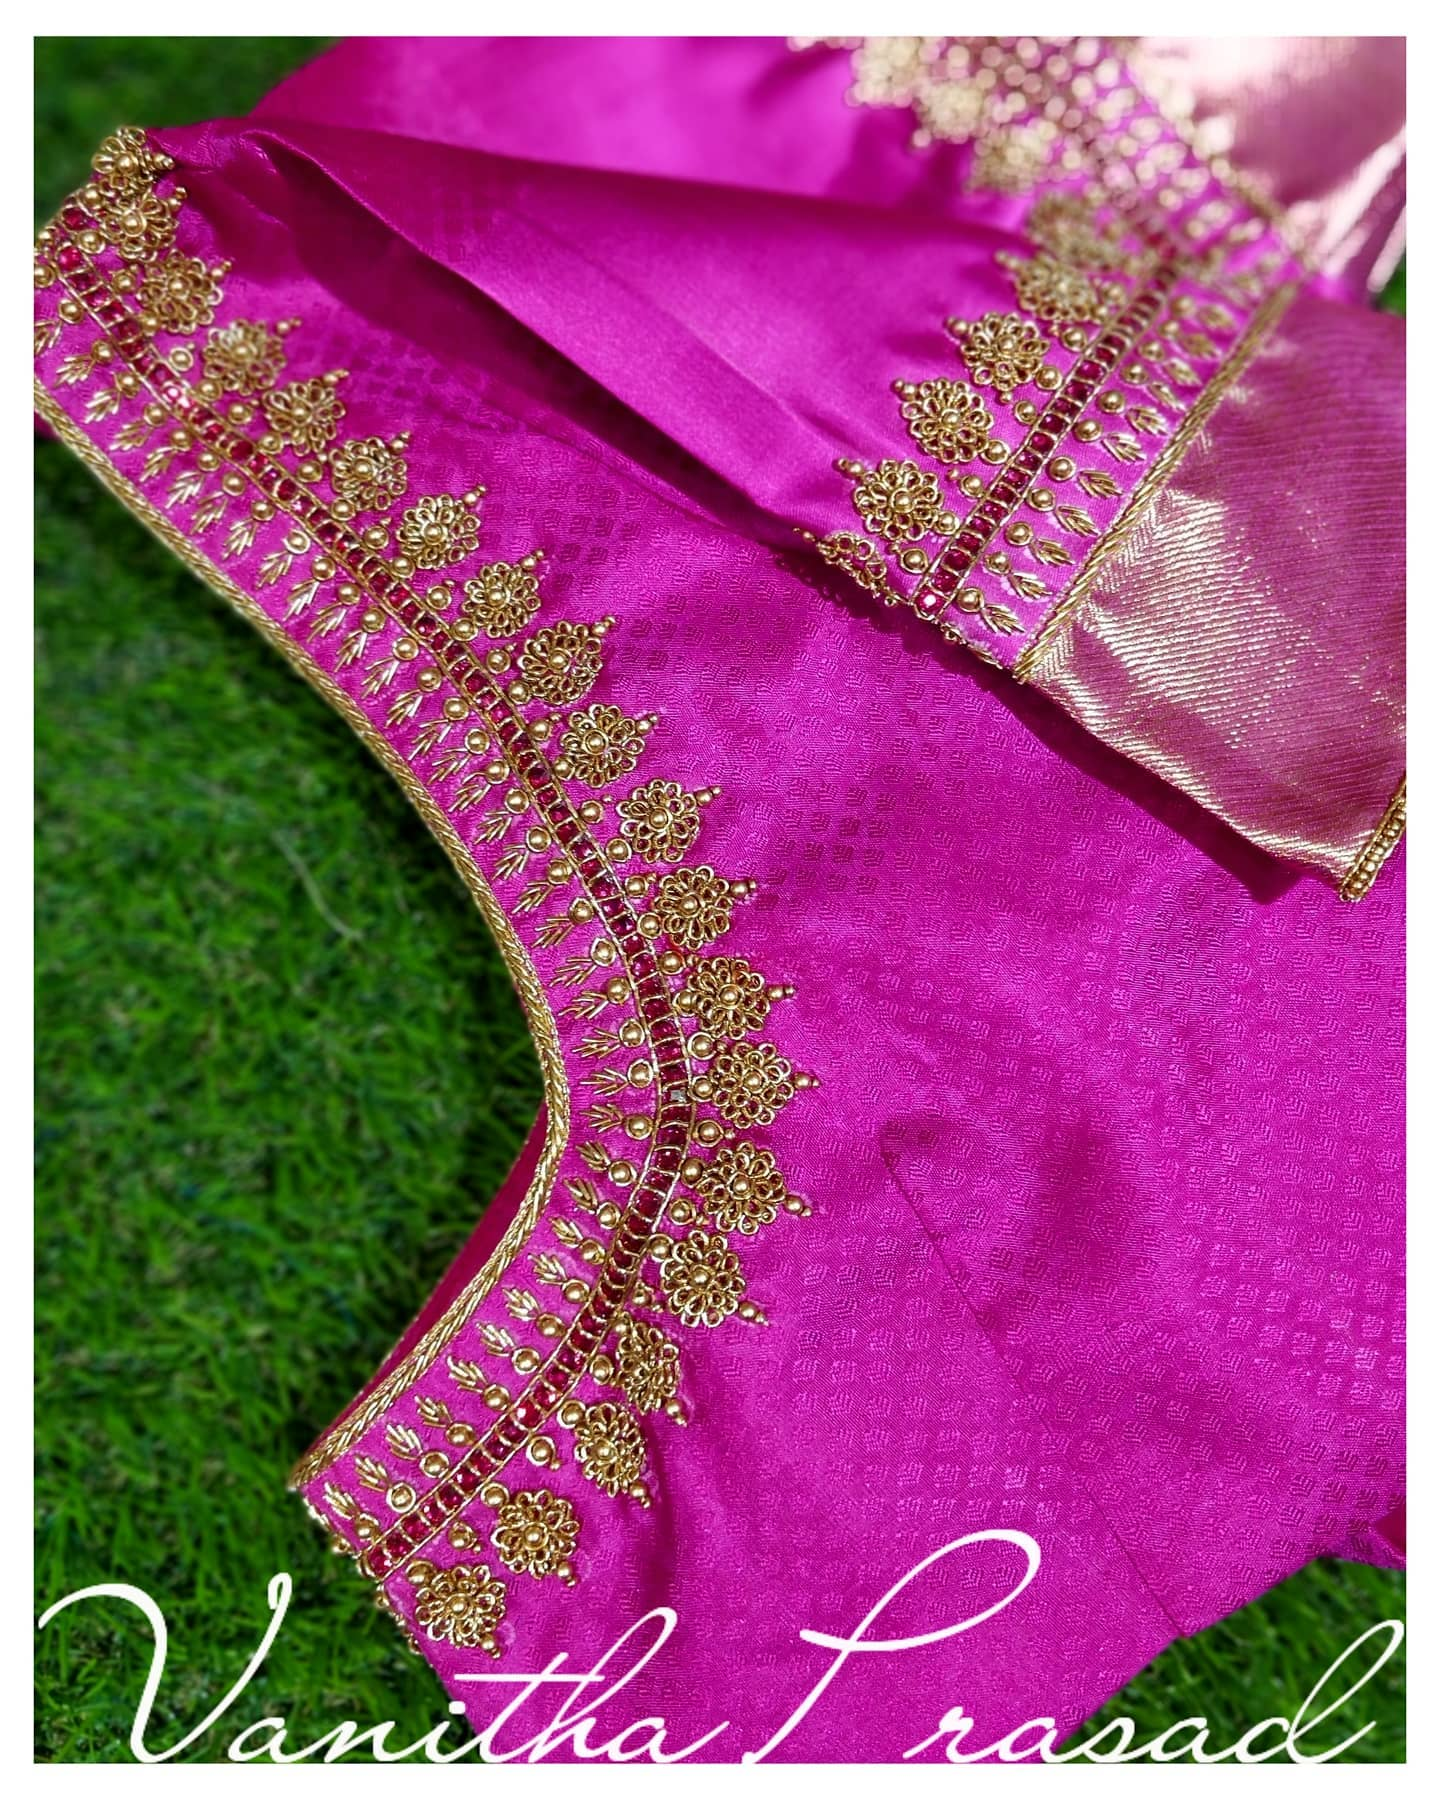 Simple and elegant blouse design. Beautiful pink color blouse design with floral gold thread zardosi work on on neckline and sleeves. 2021-06-16